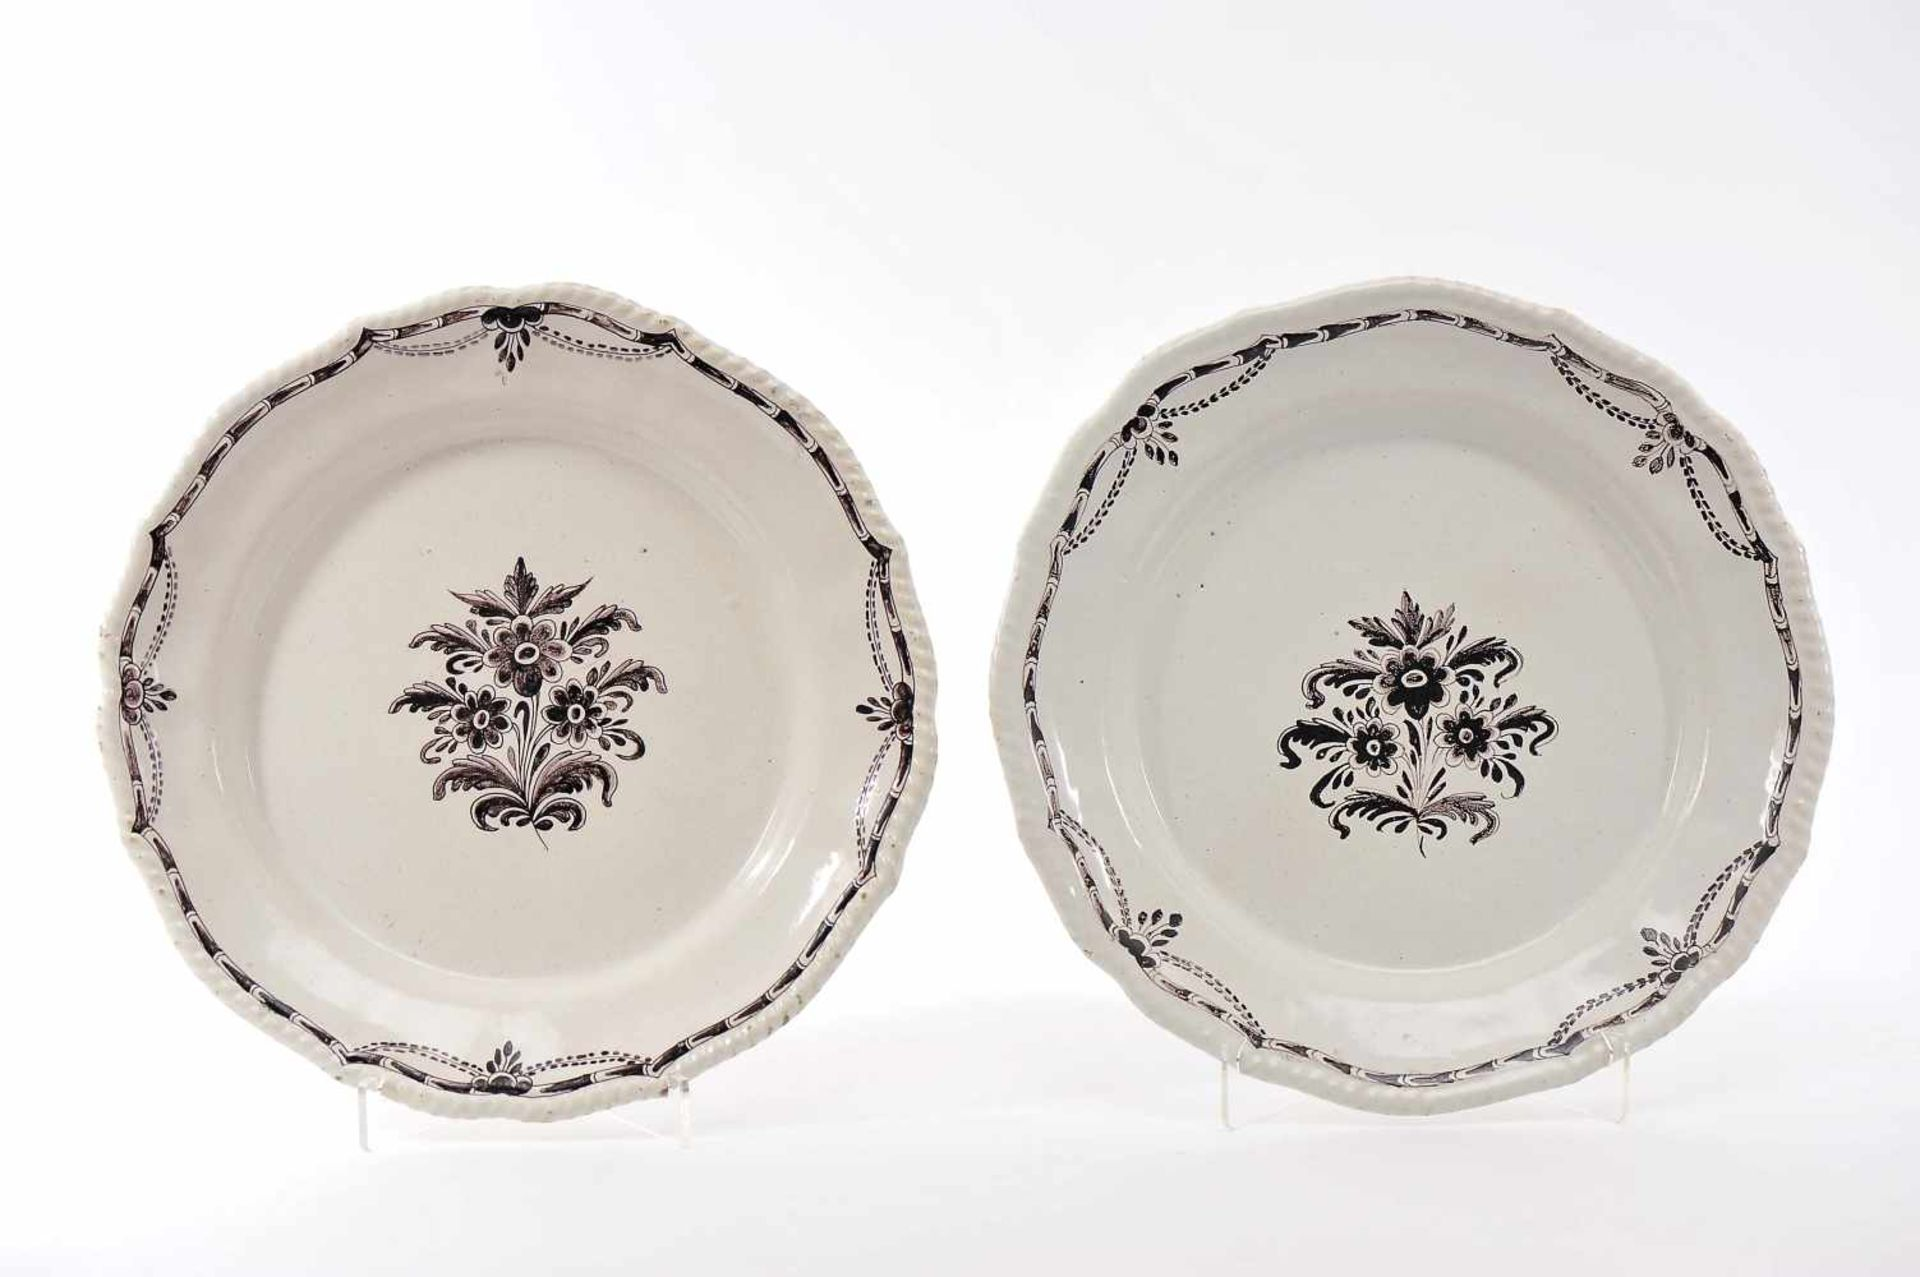 Los 74 - A Pair of Large Scalloped DishesA Pair of Large Scalloped Dishes, Viana do Castelo faience,...